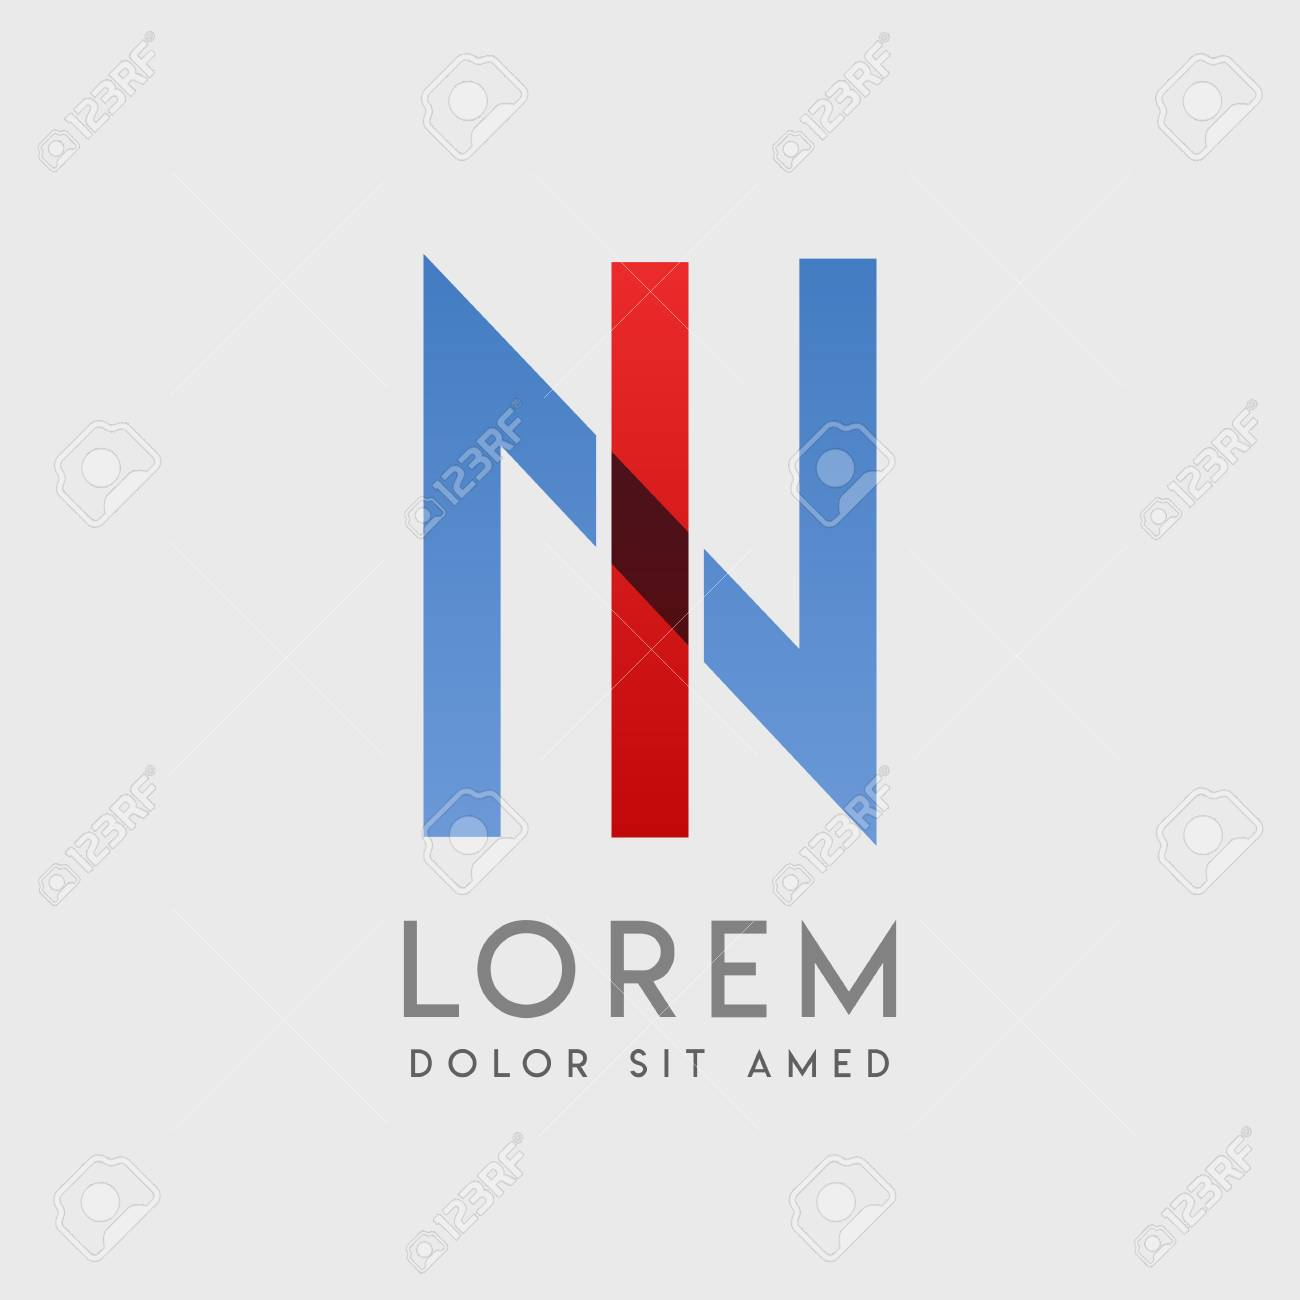 """IN logo letters with """"blue and red"""" gradation - 99153152"""